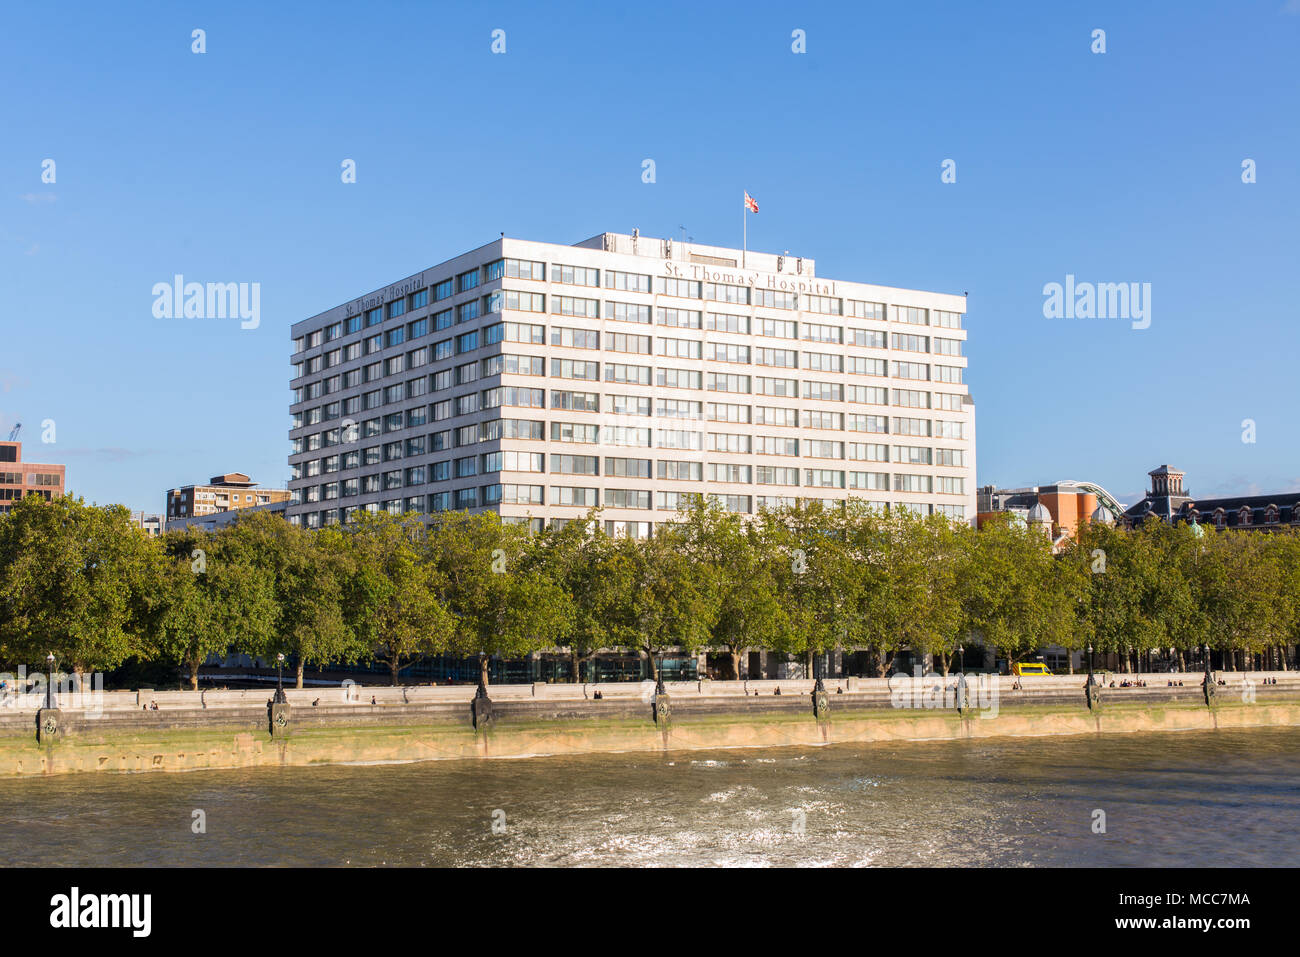 St Thomas' Hospital on the banks of river Thames is a large NHS teaching hospital in Central London, England. - Stock Image